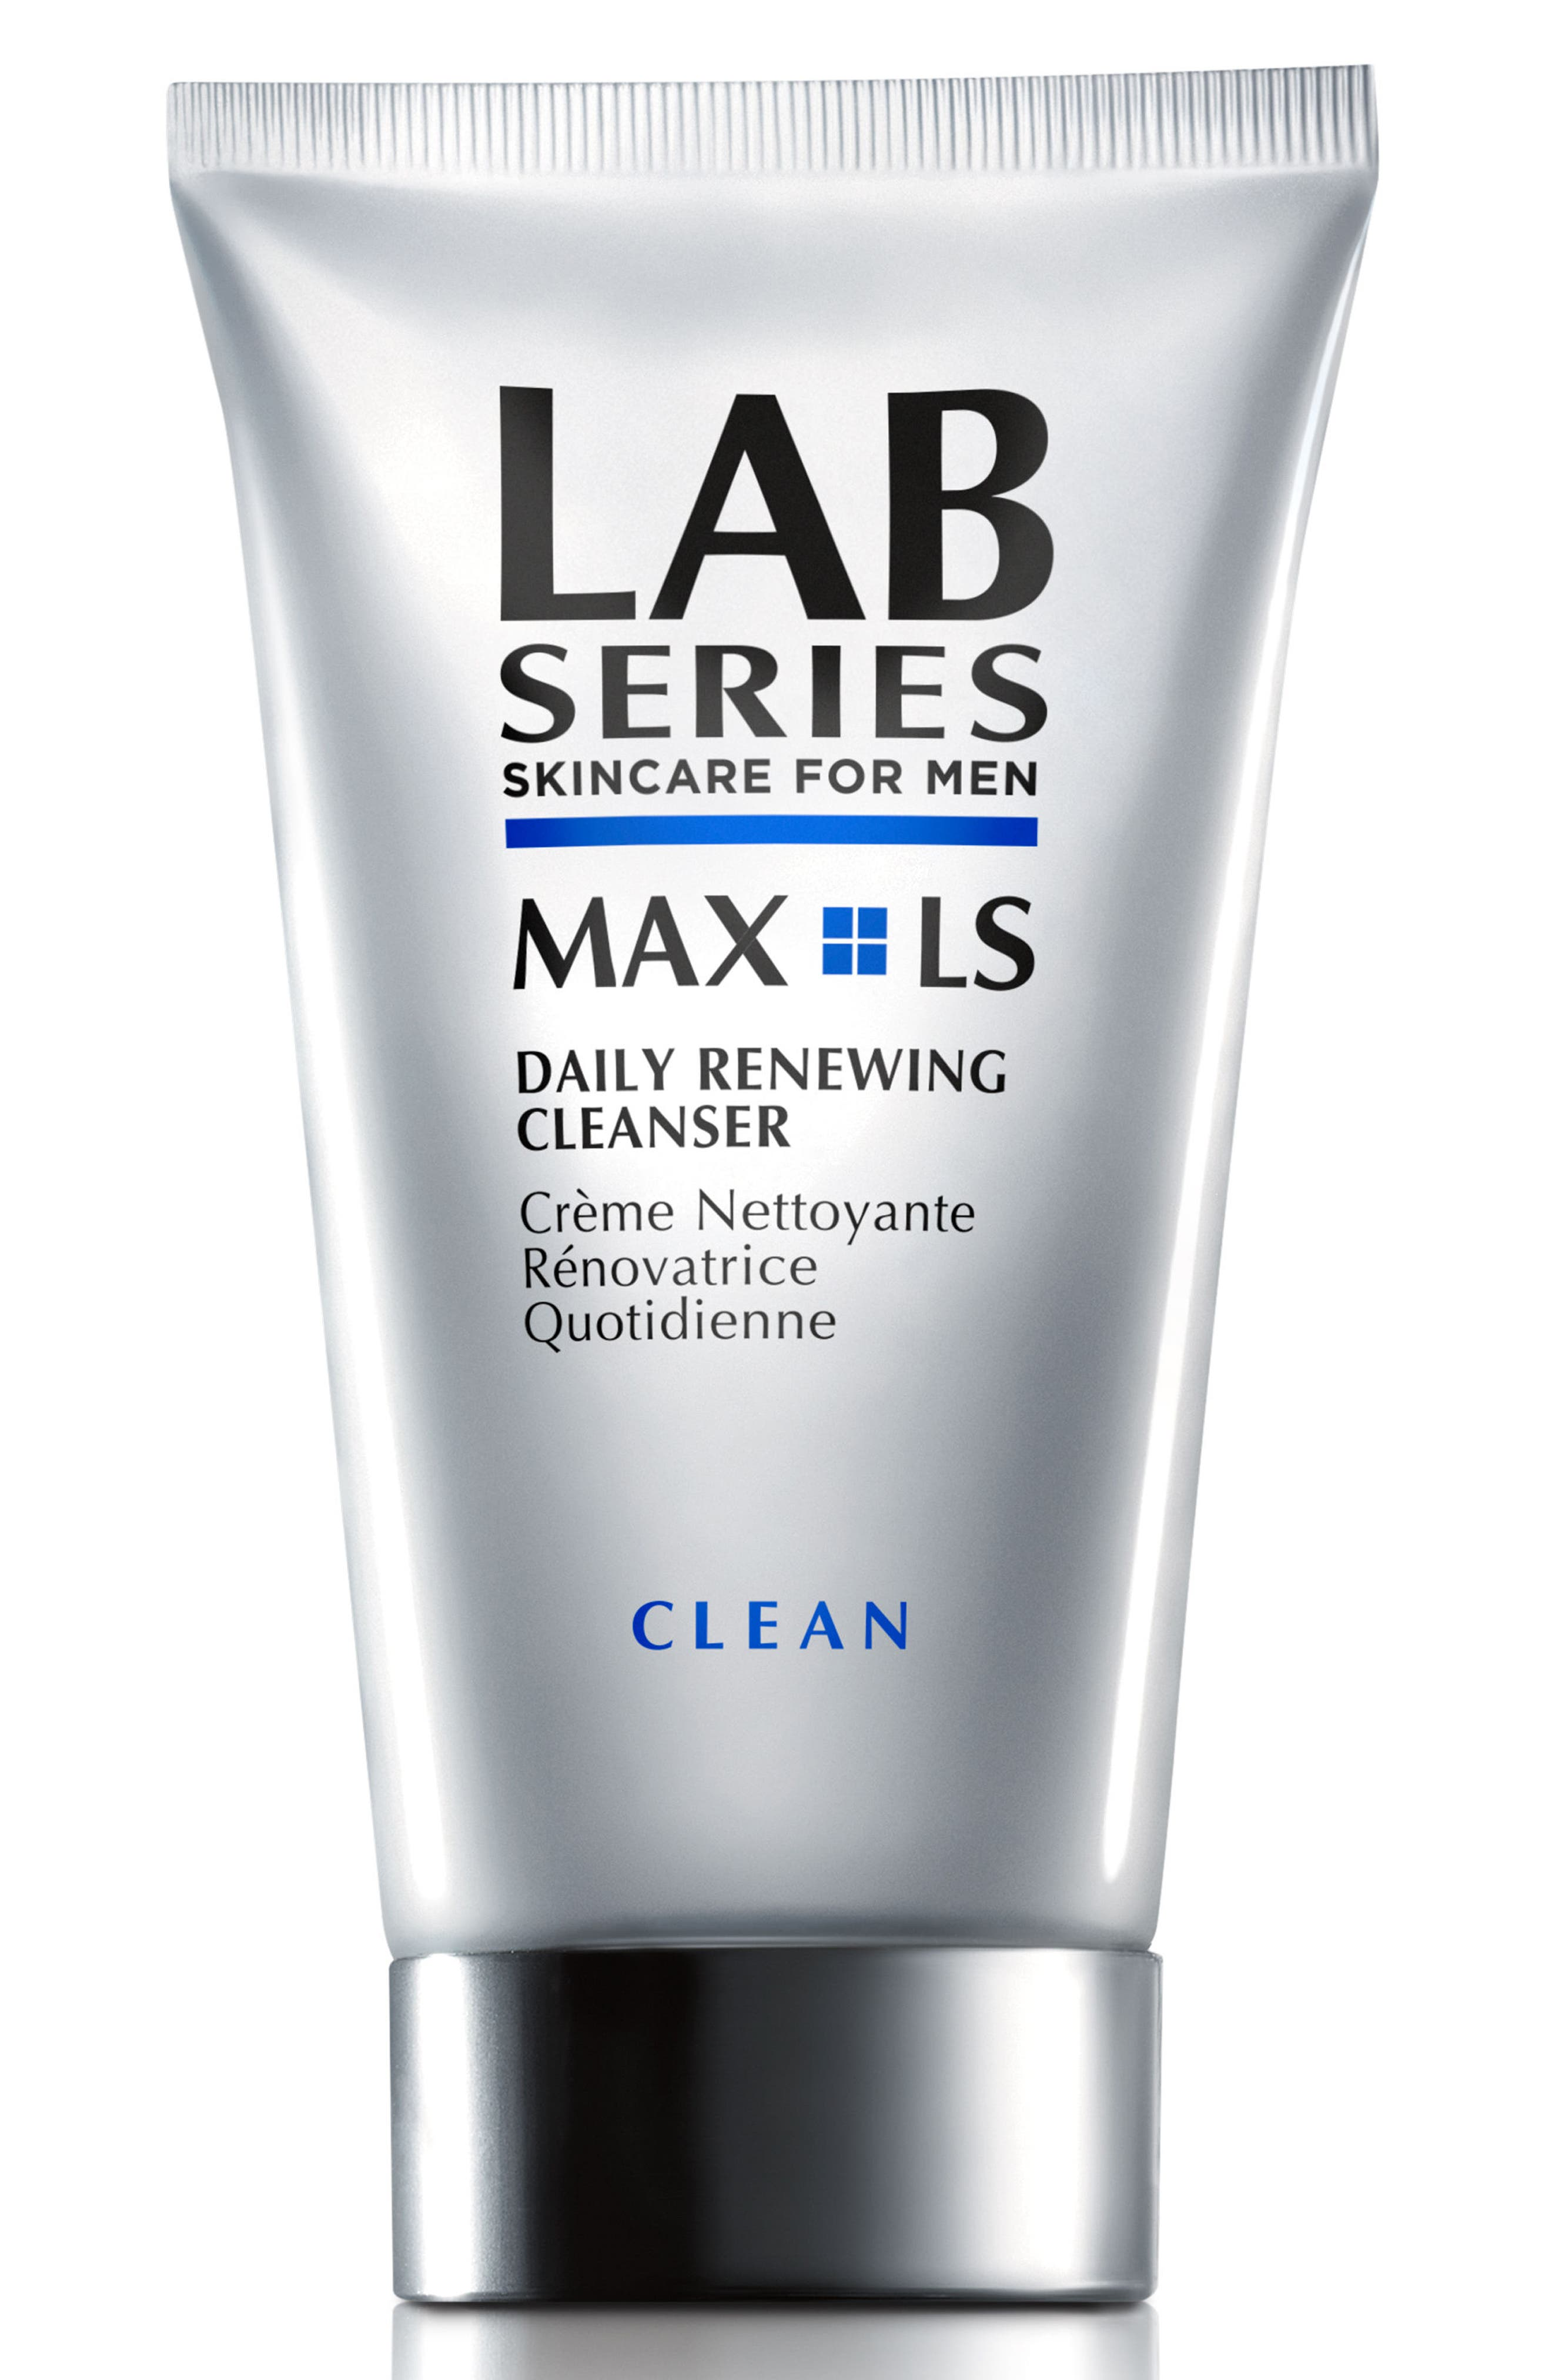 LAB SERIES SKINCARE FOR MEN MAX LS Daily Renewing Cleanser, Main, color, NO COLOR